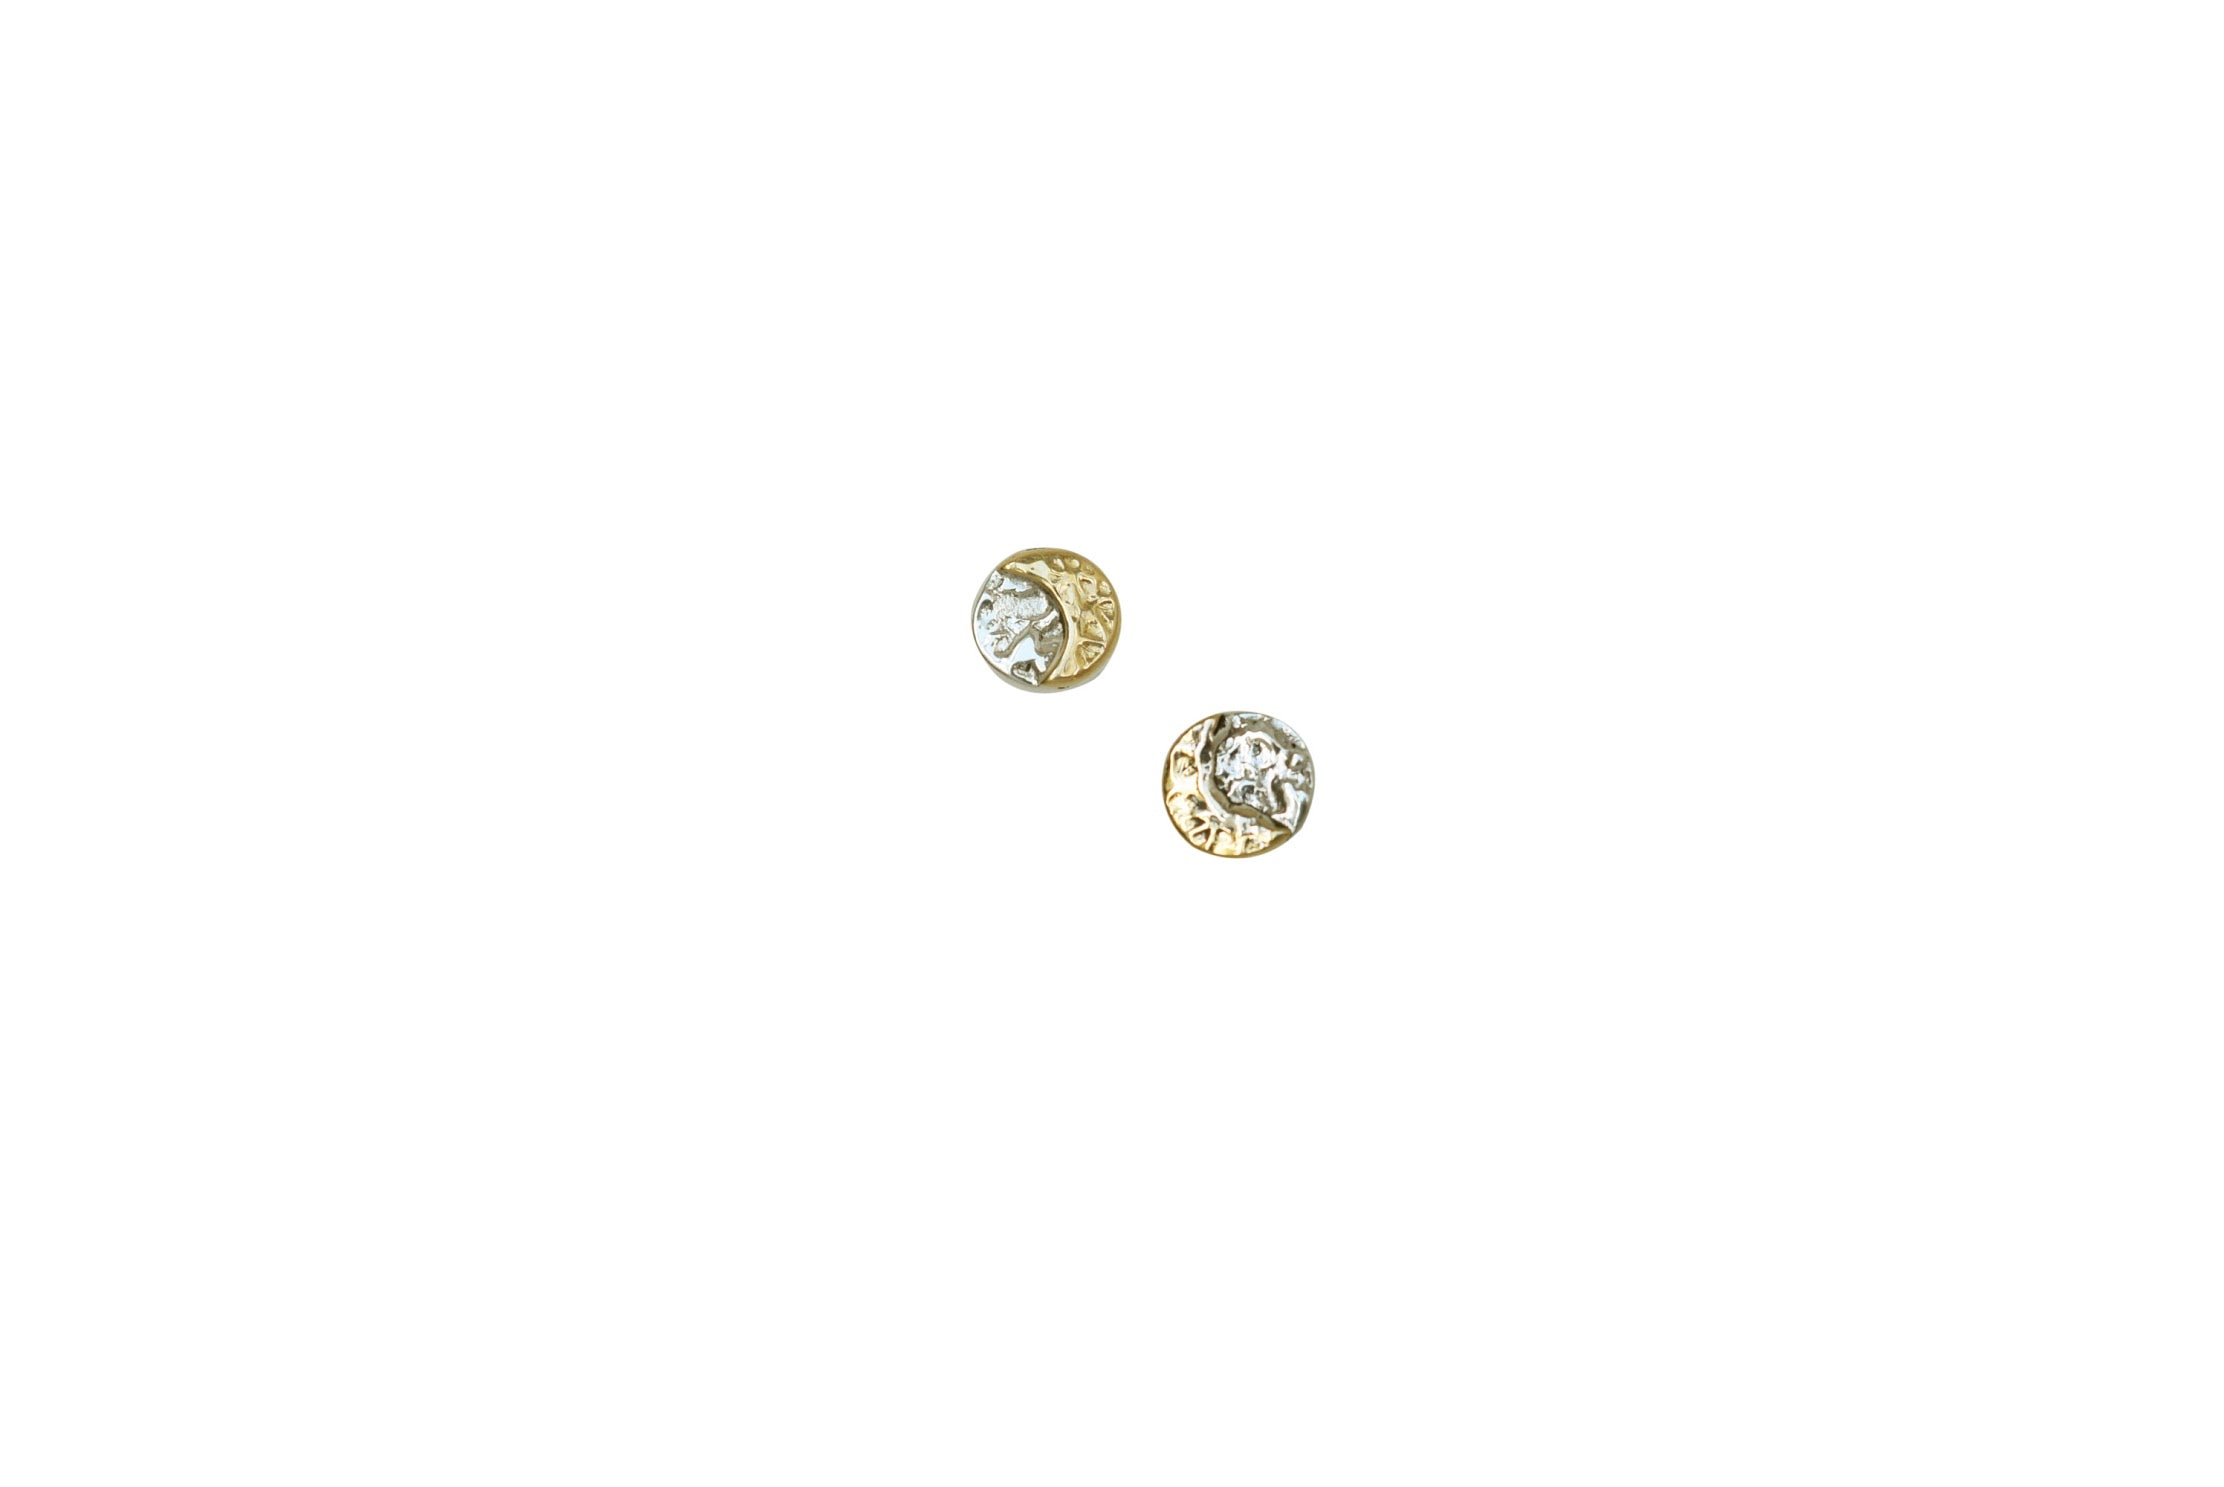 Mini Mooncoin Stud Earrings - Lissa Bowie